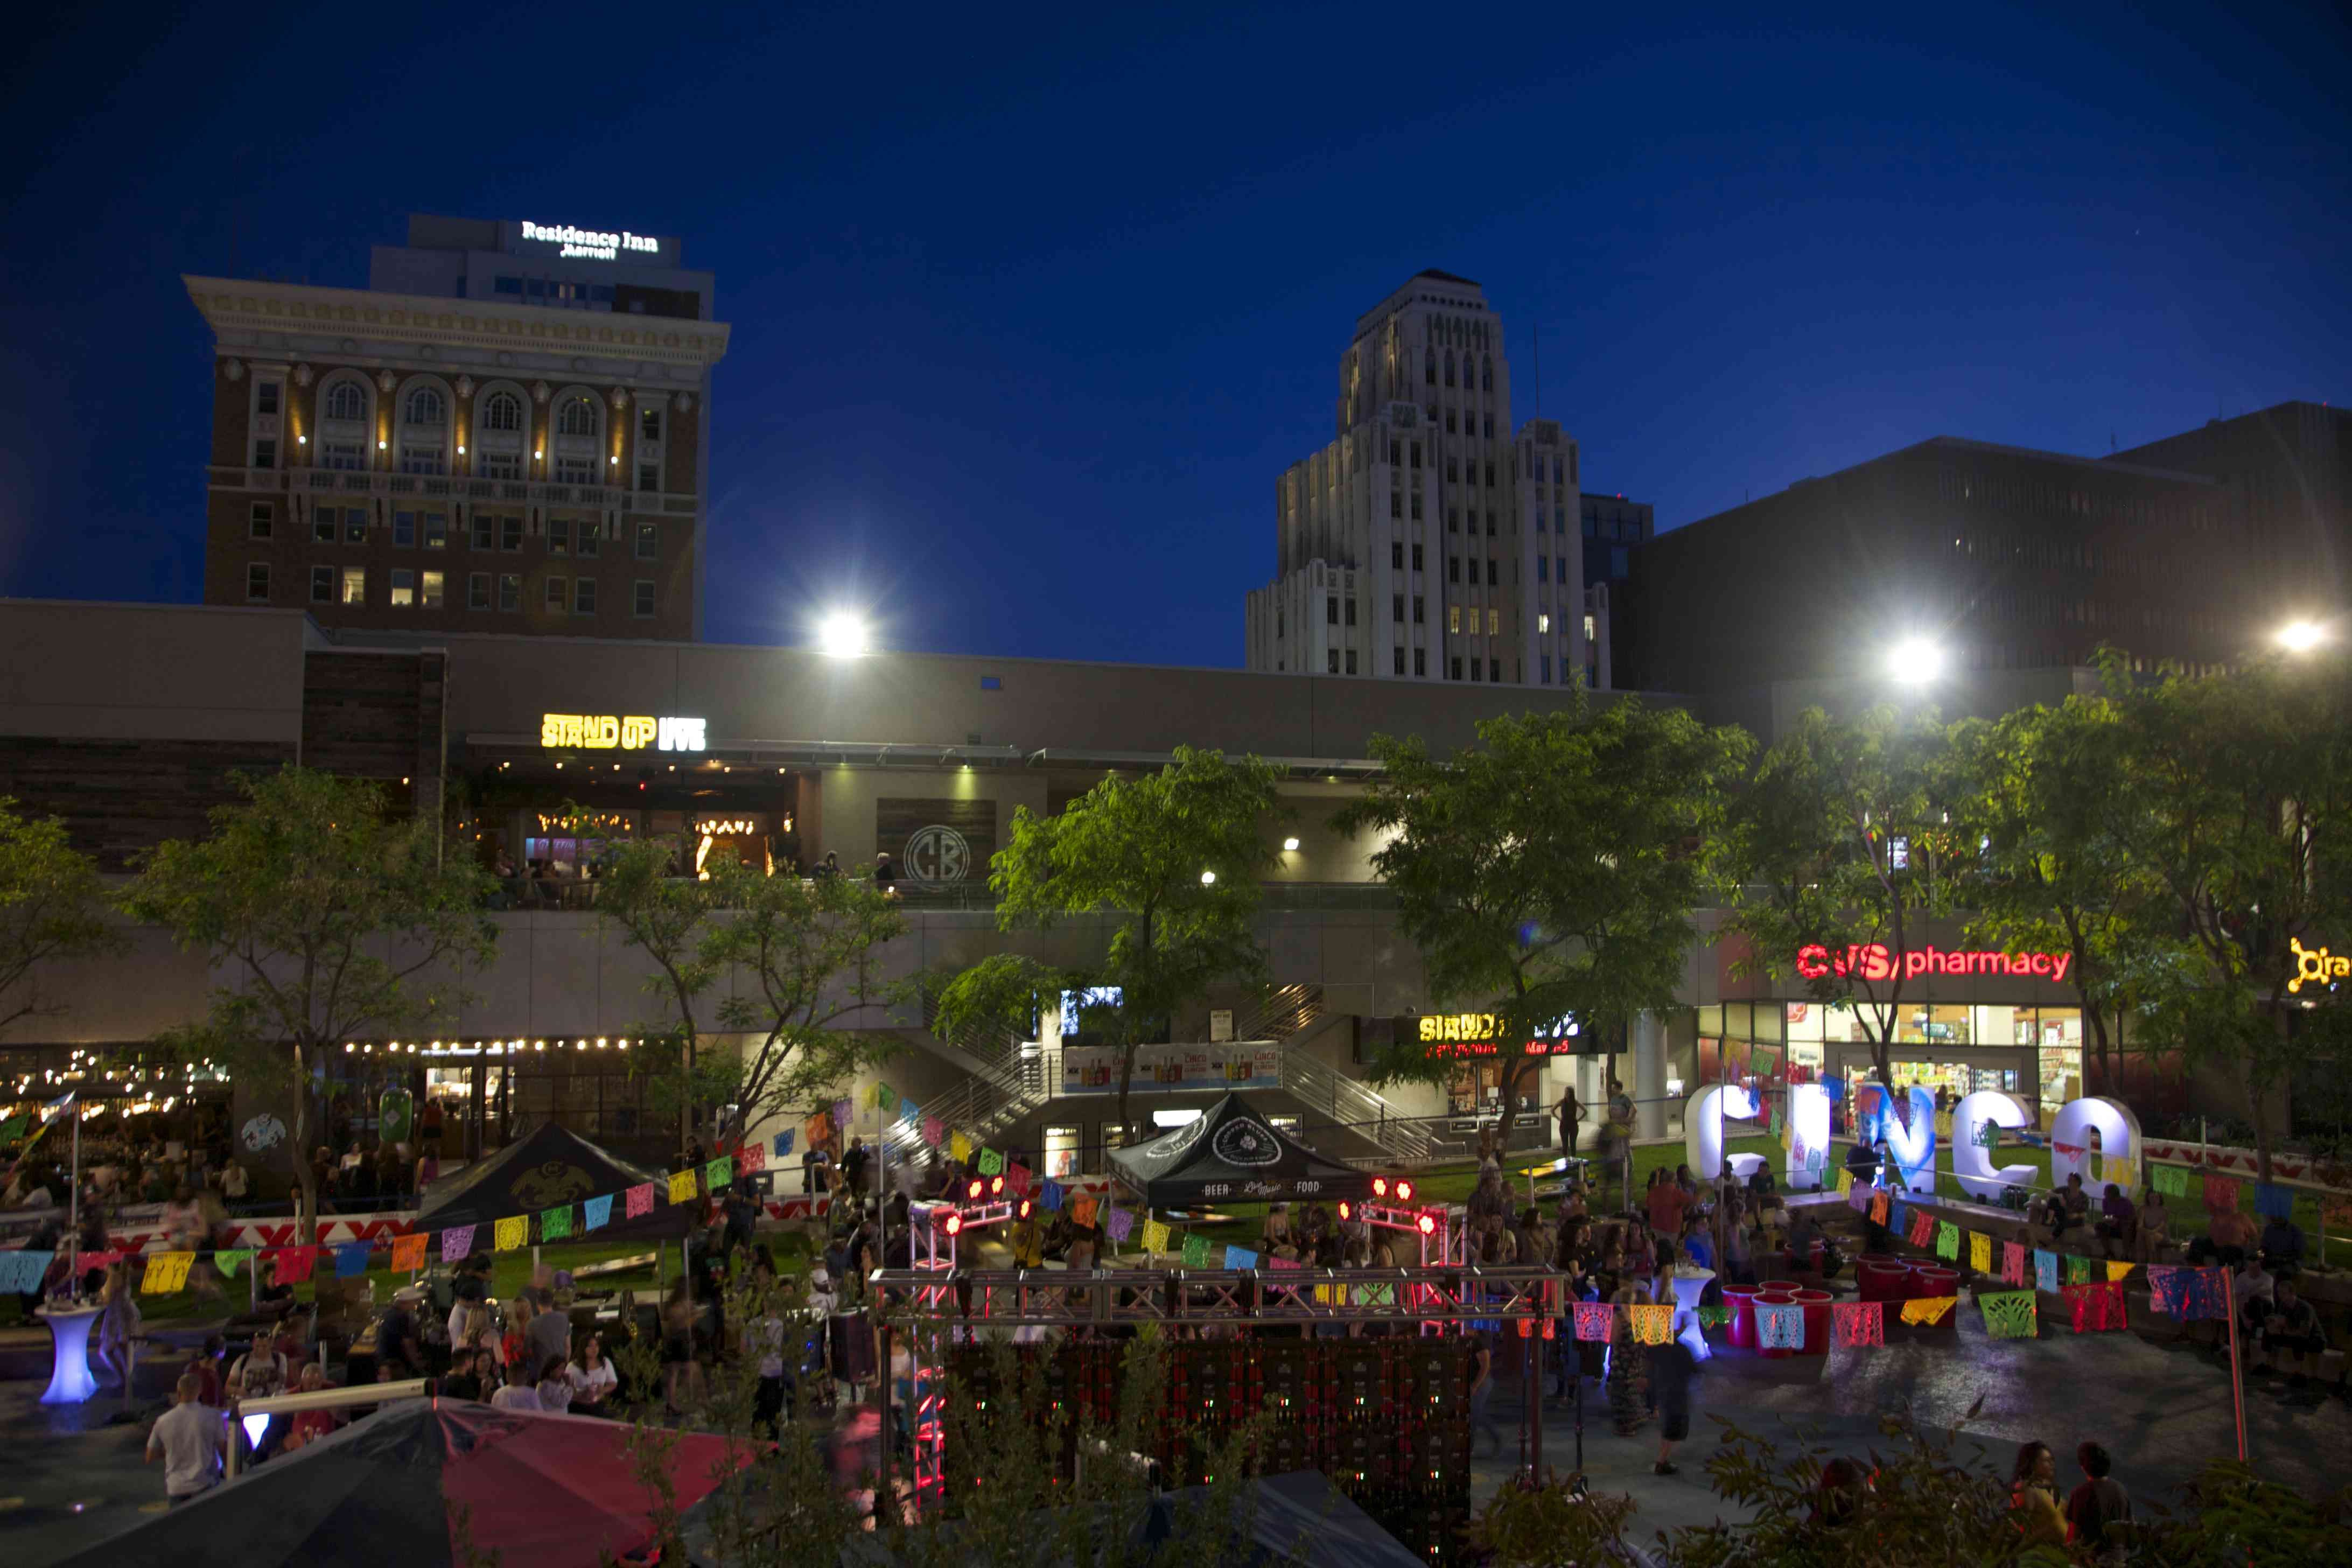 Outdoor nighttime block party in Downtown Phoenix for Cinco de Mayo